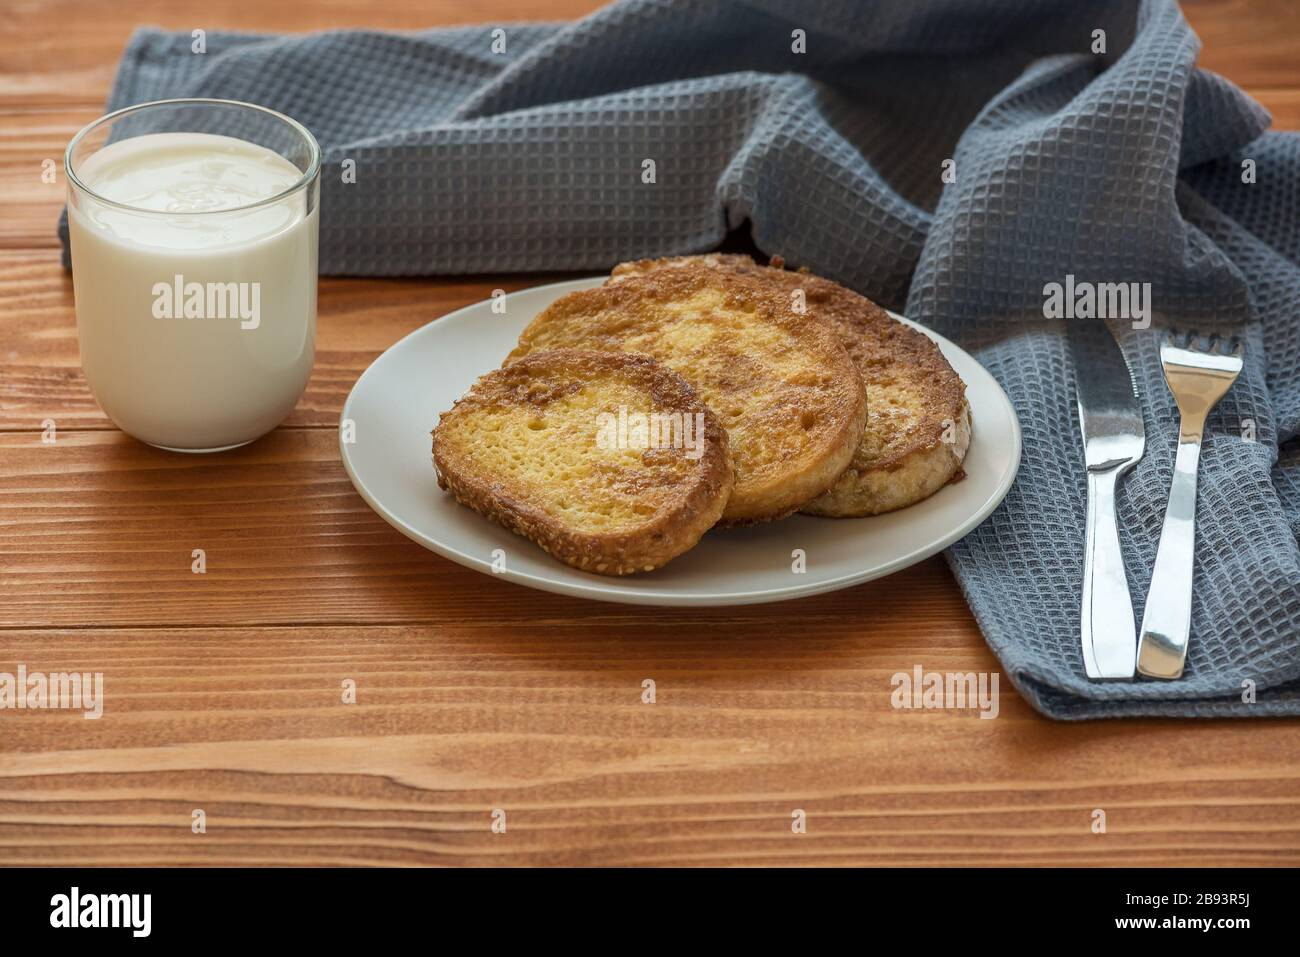 French toast - Przenice - slices of bread soaked in beaten eggs and milk and fried, with a glas of yogurt on a wooden table. Eggy bread, Bombay toast Stock Photo